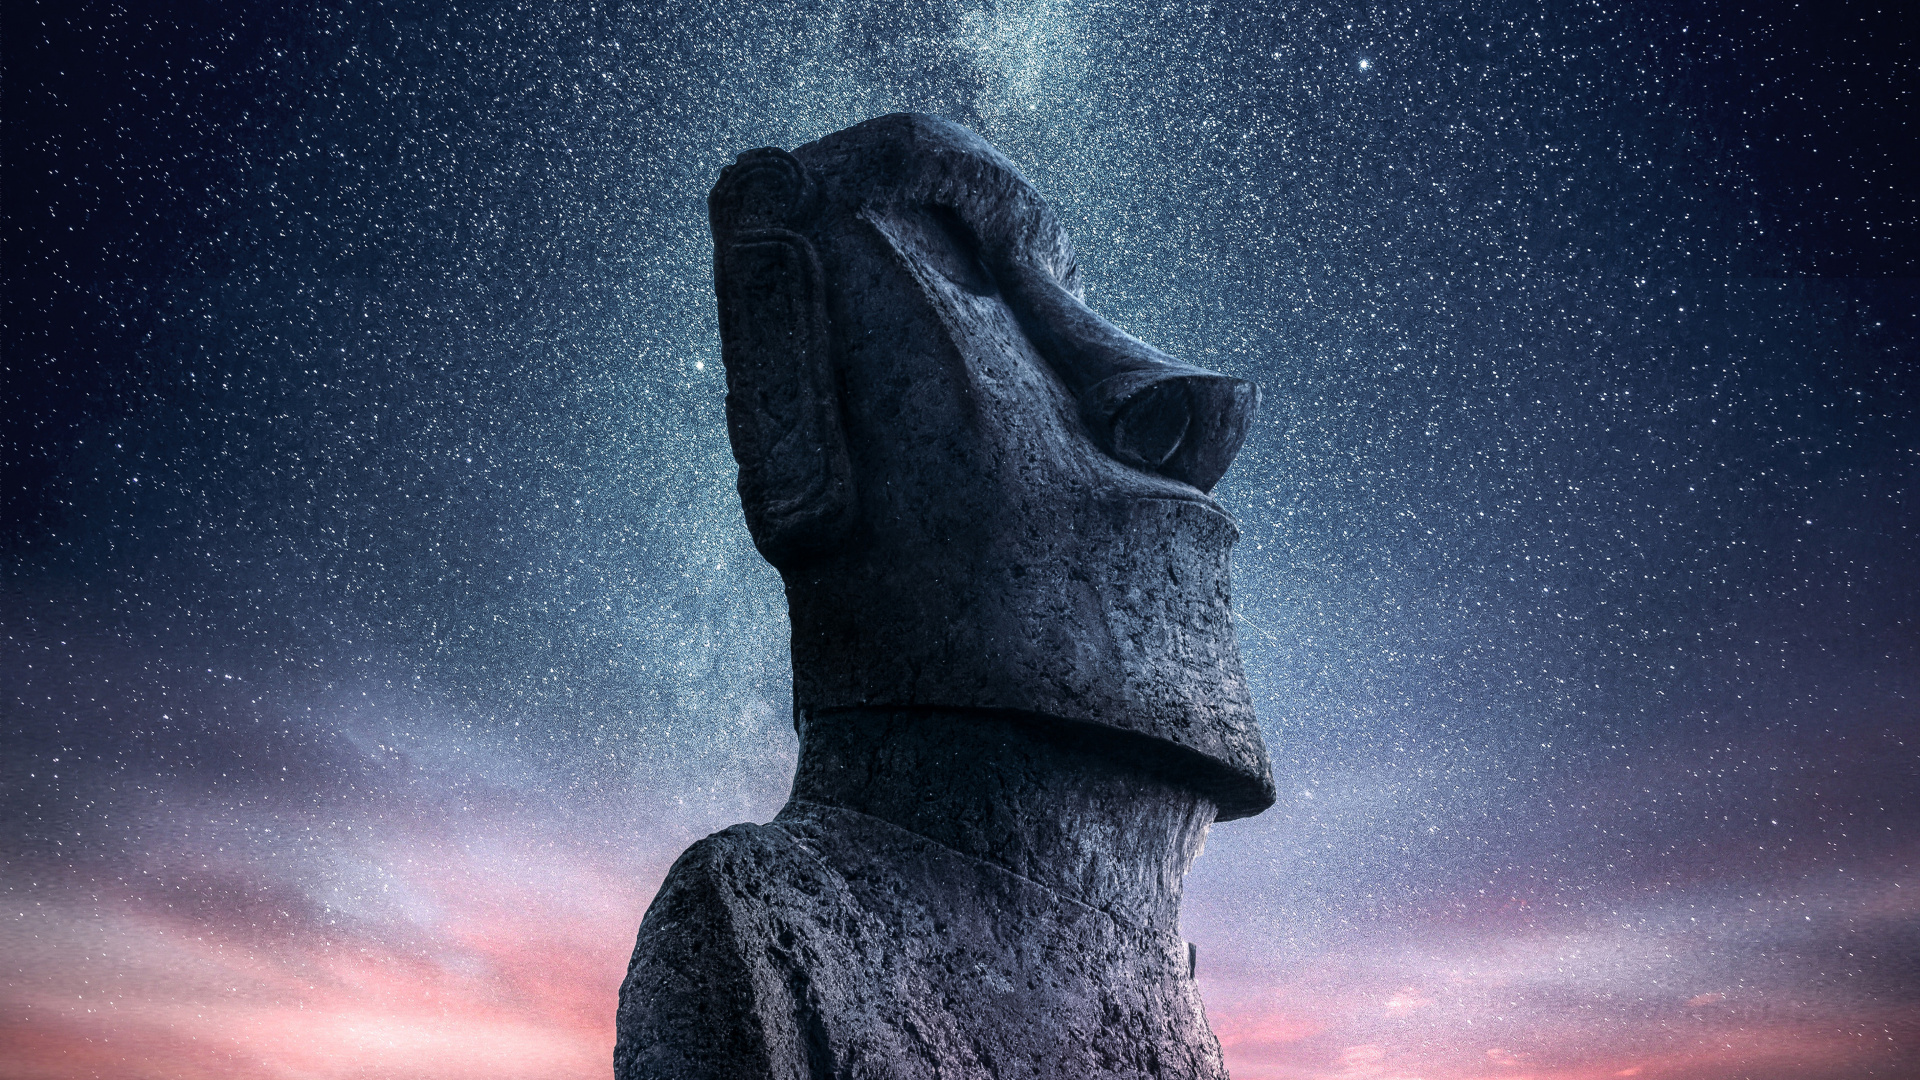 Moai Statue, Easter Island [1920x1080] : wallpapers